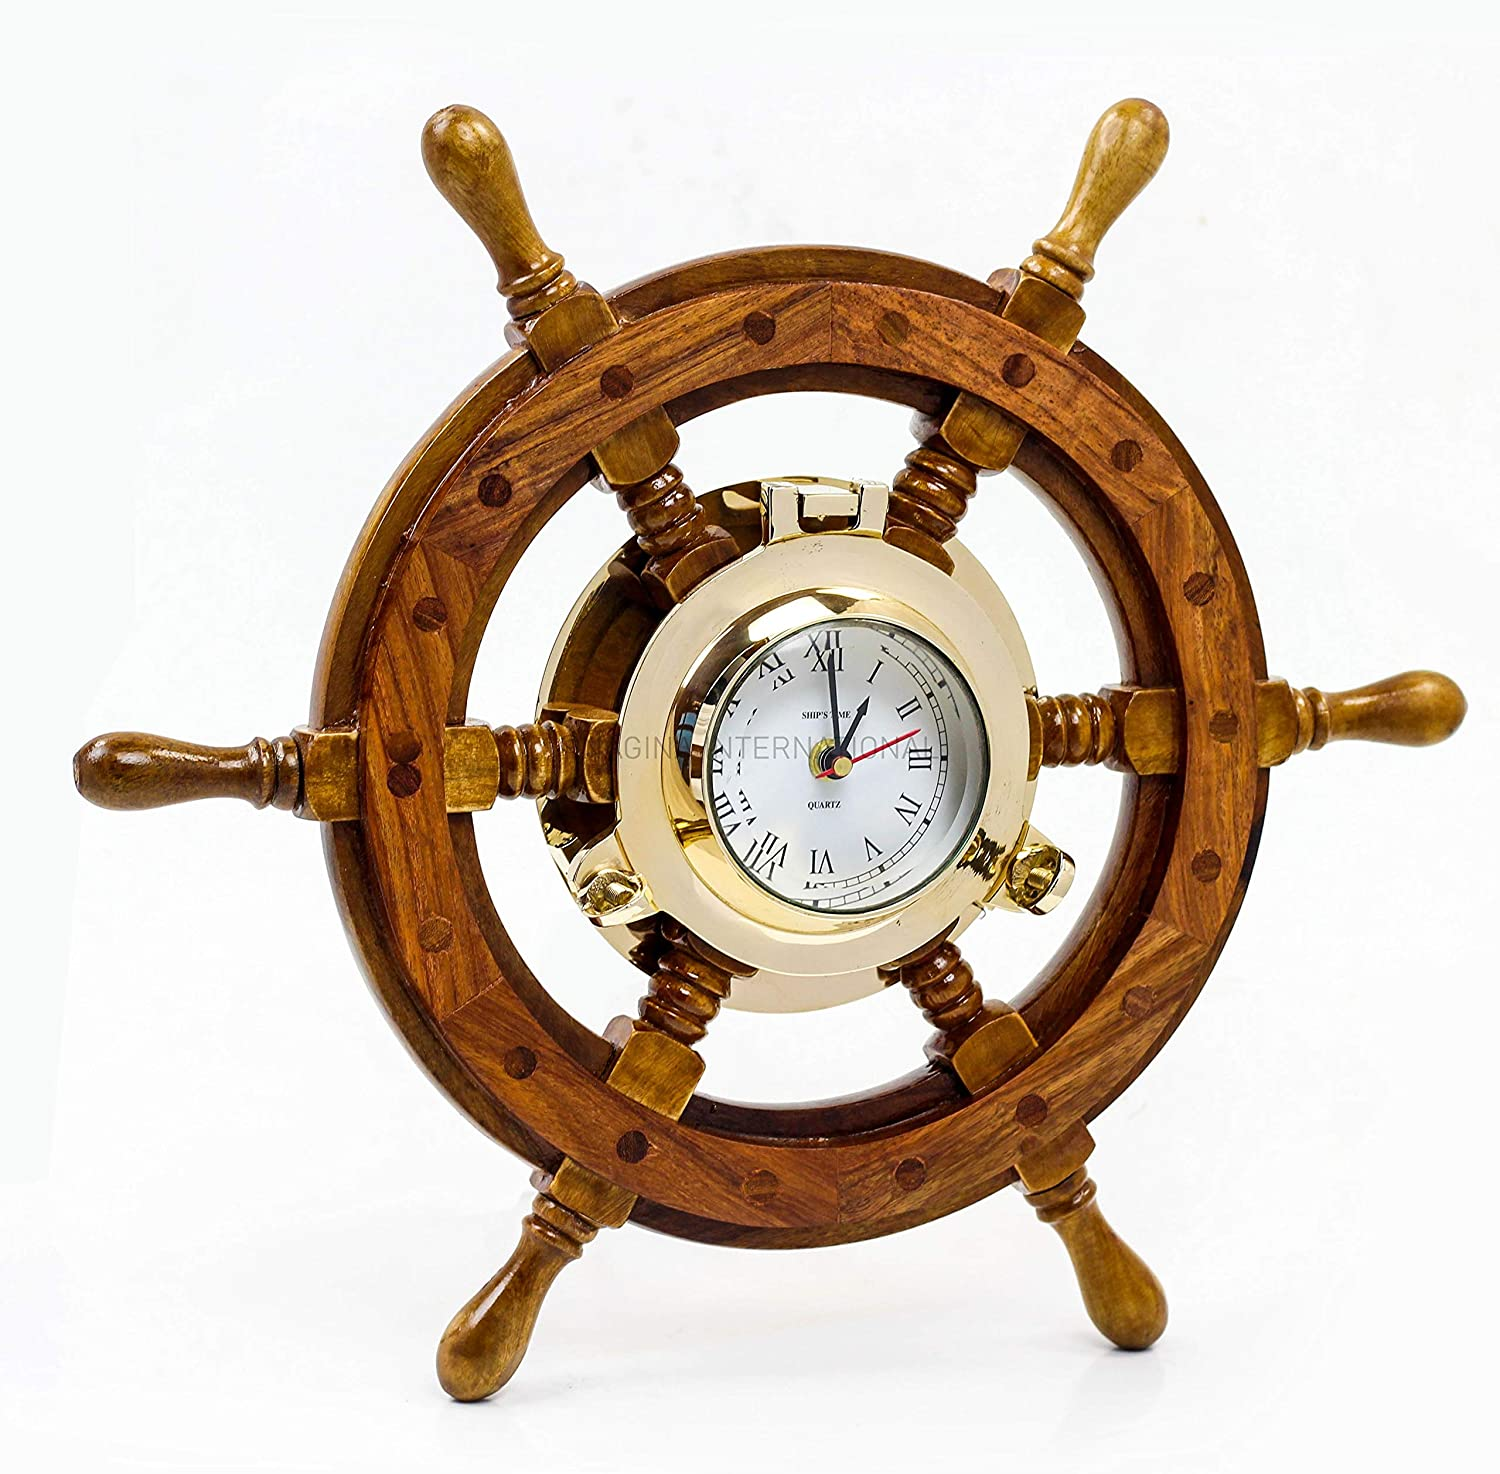 Nagina International Sailor's Premium Home Decor Time's Clock Nautical Brass Porthole Ship's Wheel | Deluxe Office Decor | Wall Decor | Birthday Gift | Christmas (24 Inches)